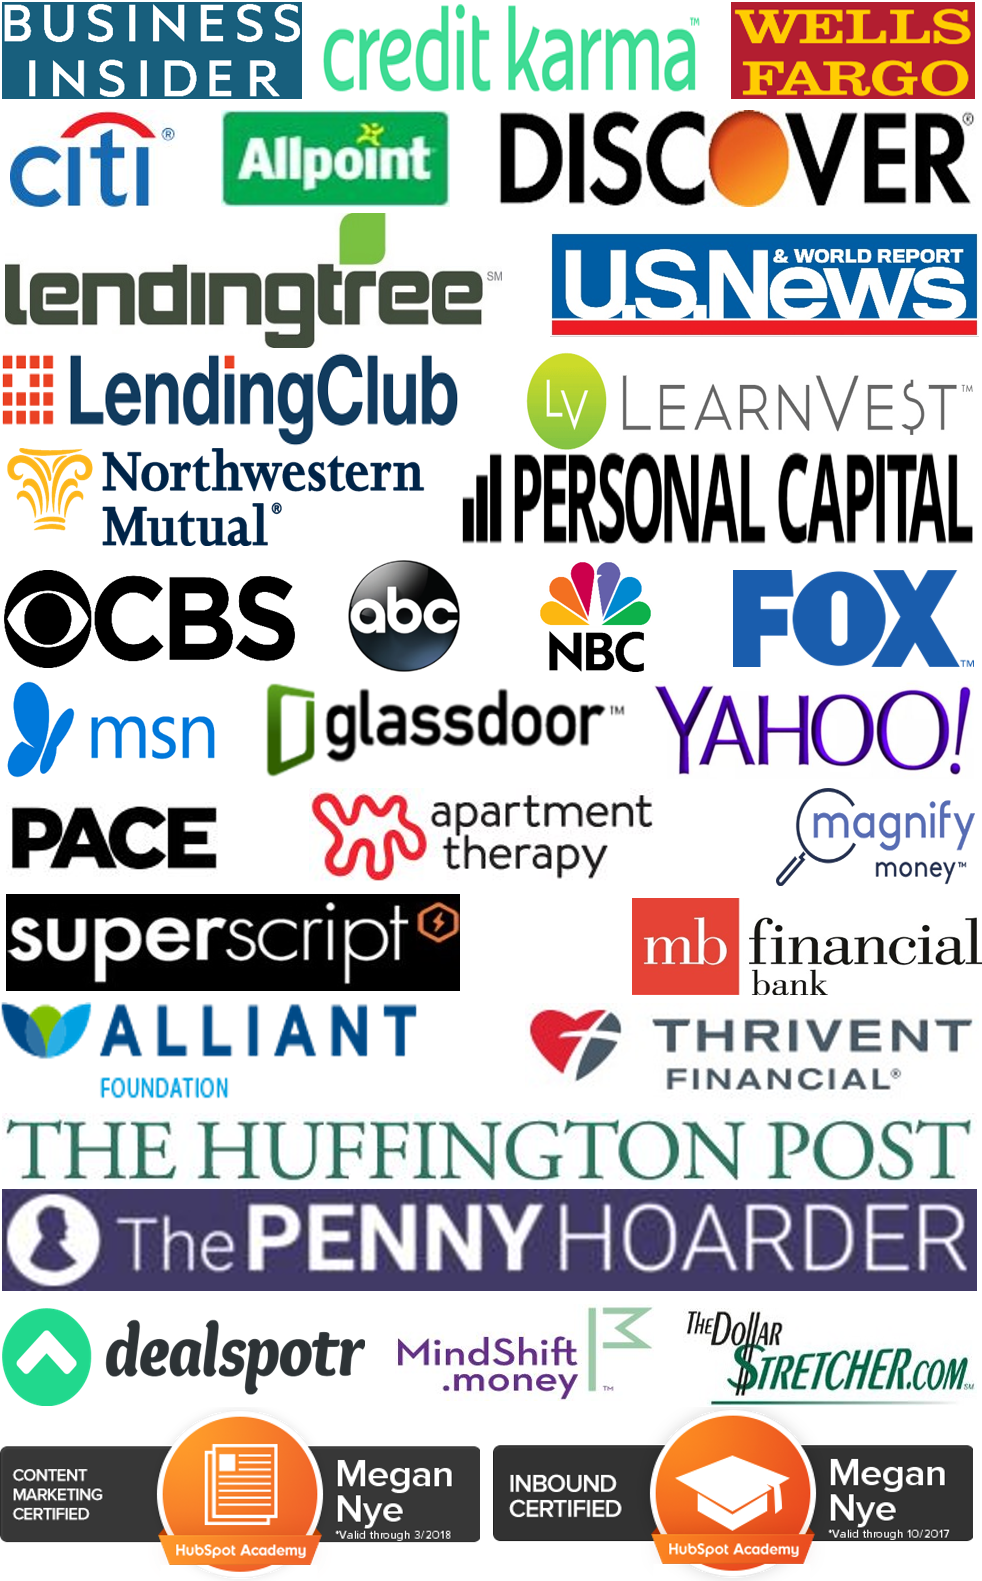 Business Insider, Wells Fargo, Allpoint, U.S. News & World Report, Citi, Credit Karma, Discover, Personal Capital, LendingClub, Cardtronics, SuperScript Marketing, Pace Communications, Thrivent Magazine / Thrivent Financial, MB Financial Bank, Lending Tree, ABC, NBC, CBS, Magnify Money, MSN, Glassdoor, Yahoo, Apartment Therapy, FOX, Northwestern Mutual, LearnVest, Alliant Credit Union Foundation, Vibrant Life, The Huffington Post, The Penny Hoarder, Focus on the Family Magazine, MindShift.money, The Dollar Stretcher, ChimpChange, Dealspotr, Our Sunday Visitor Newsweekly, Catholic Update, Hubspot Academy Content Marketing Certified, HubSpot Academy Inbound Certified